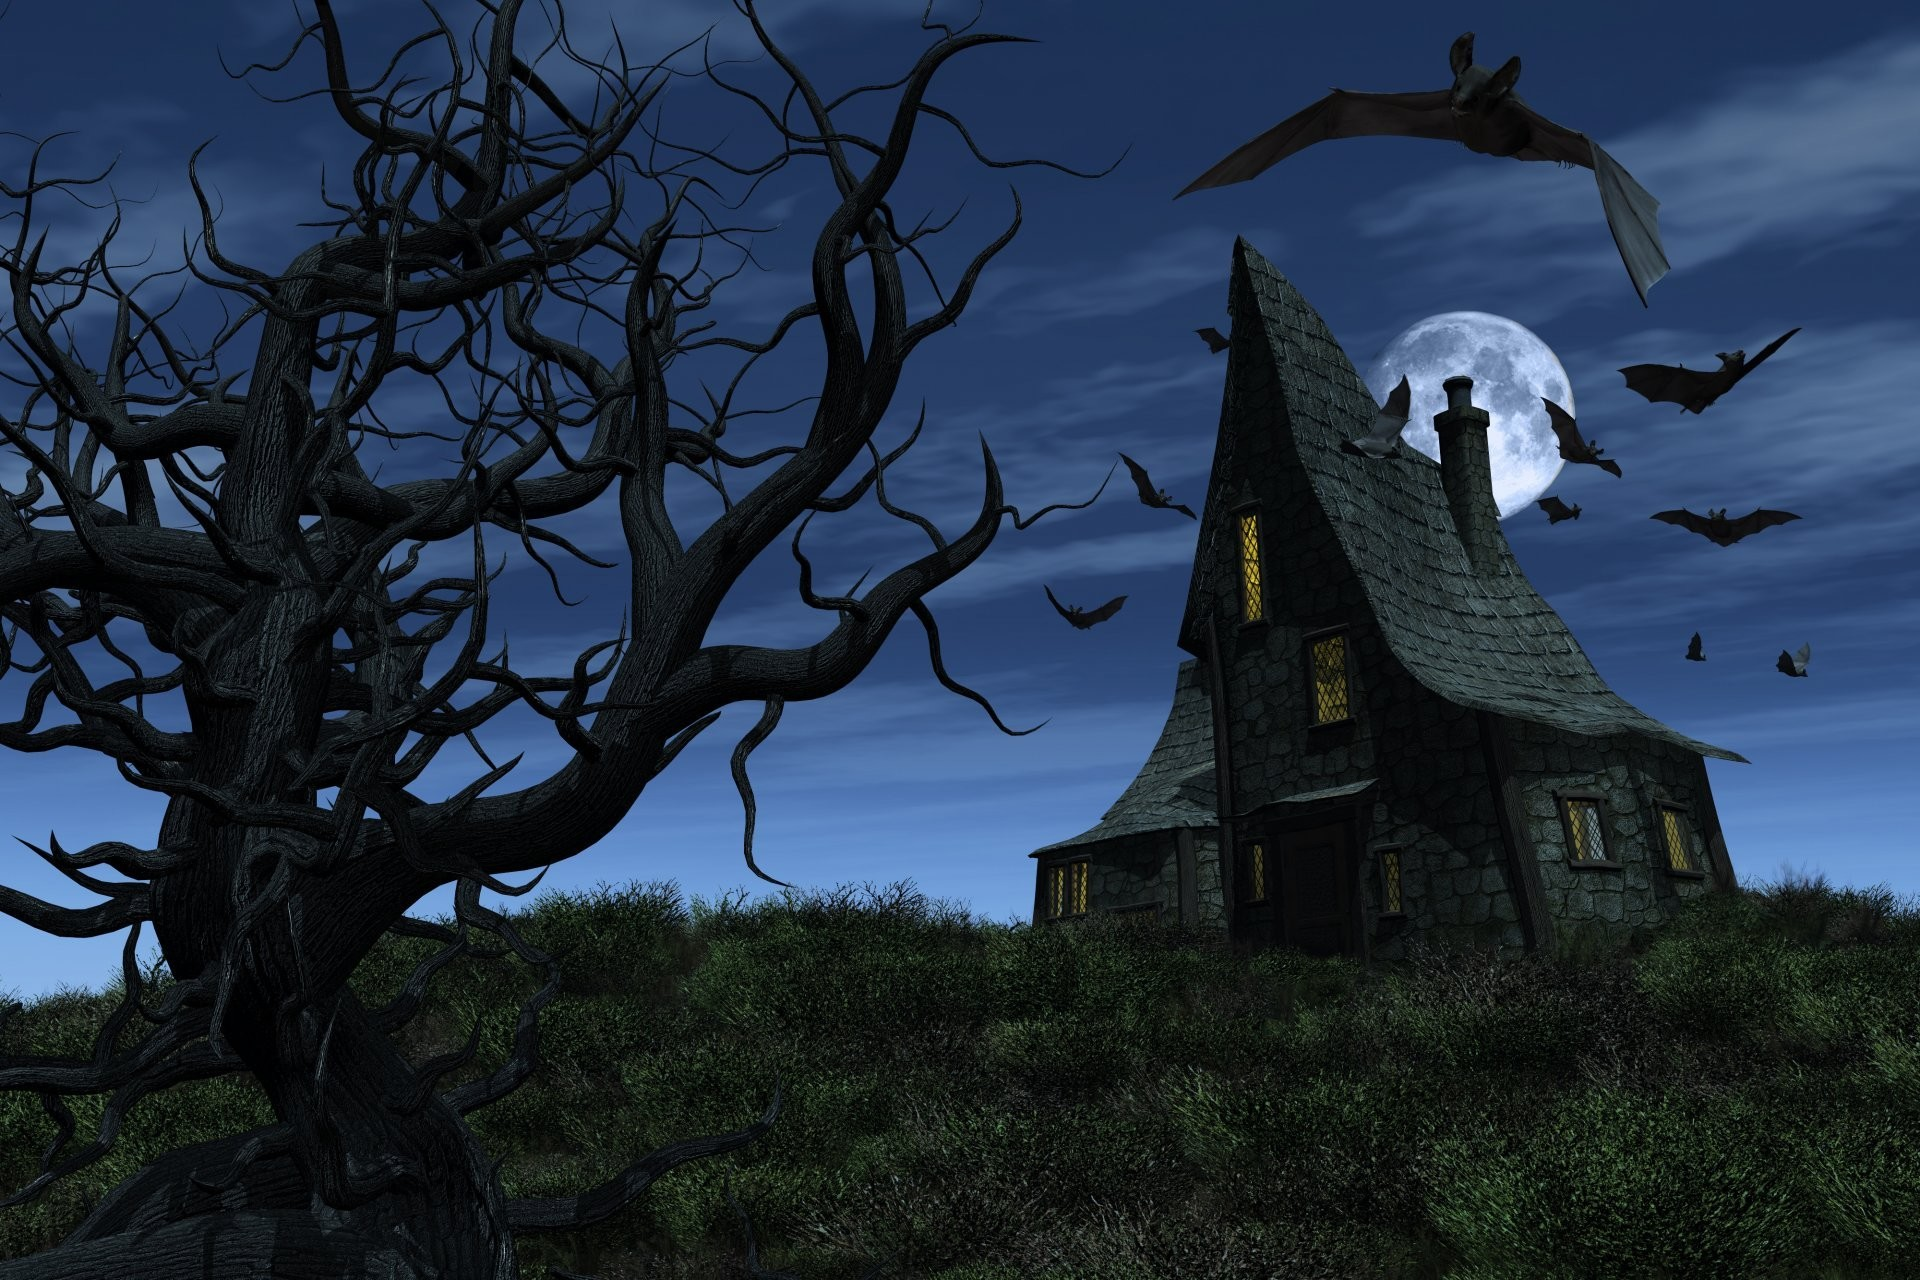 Haunted House Wallpaper (68+ images)